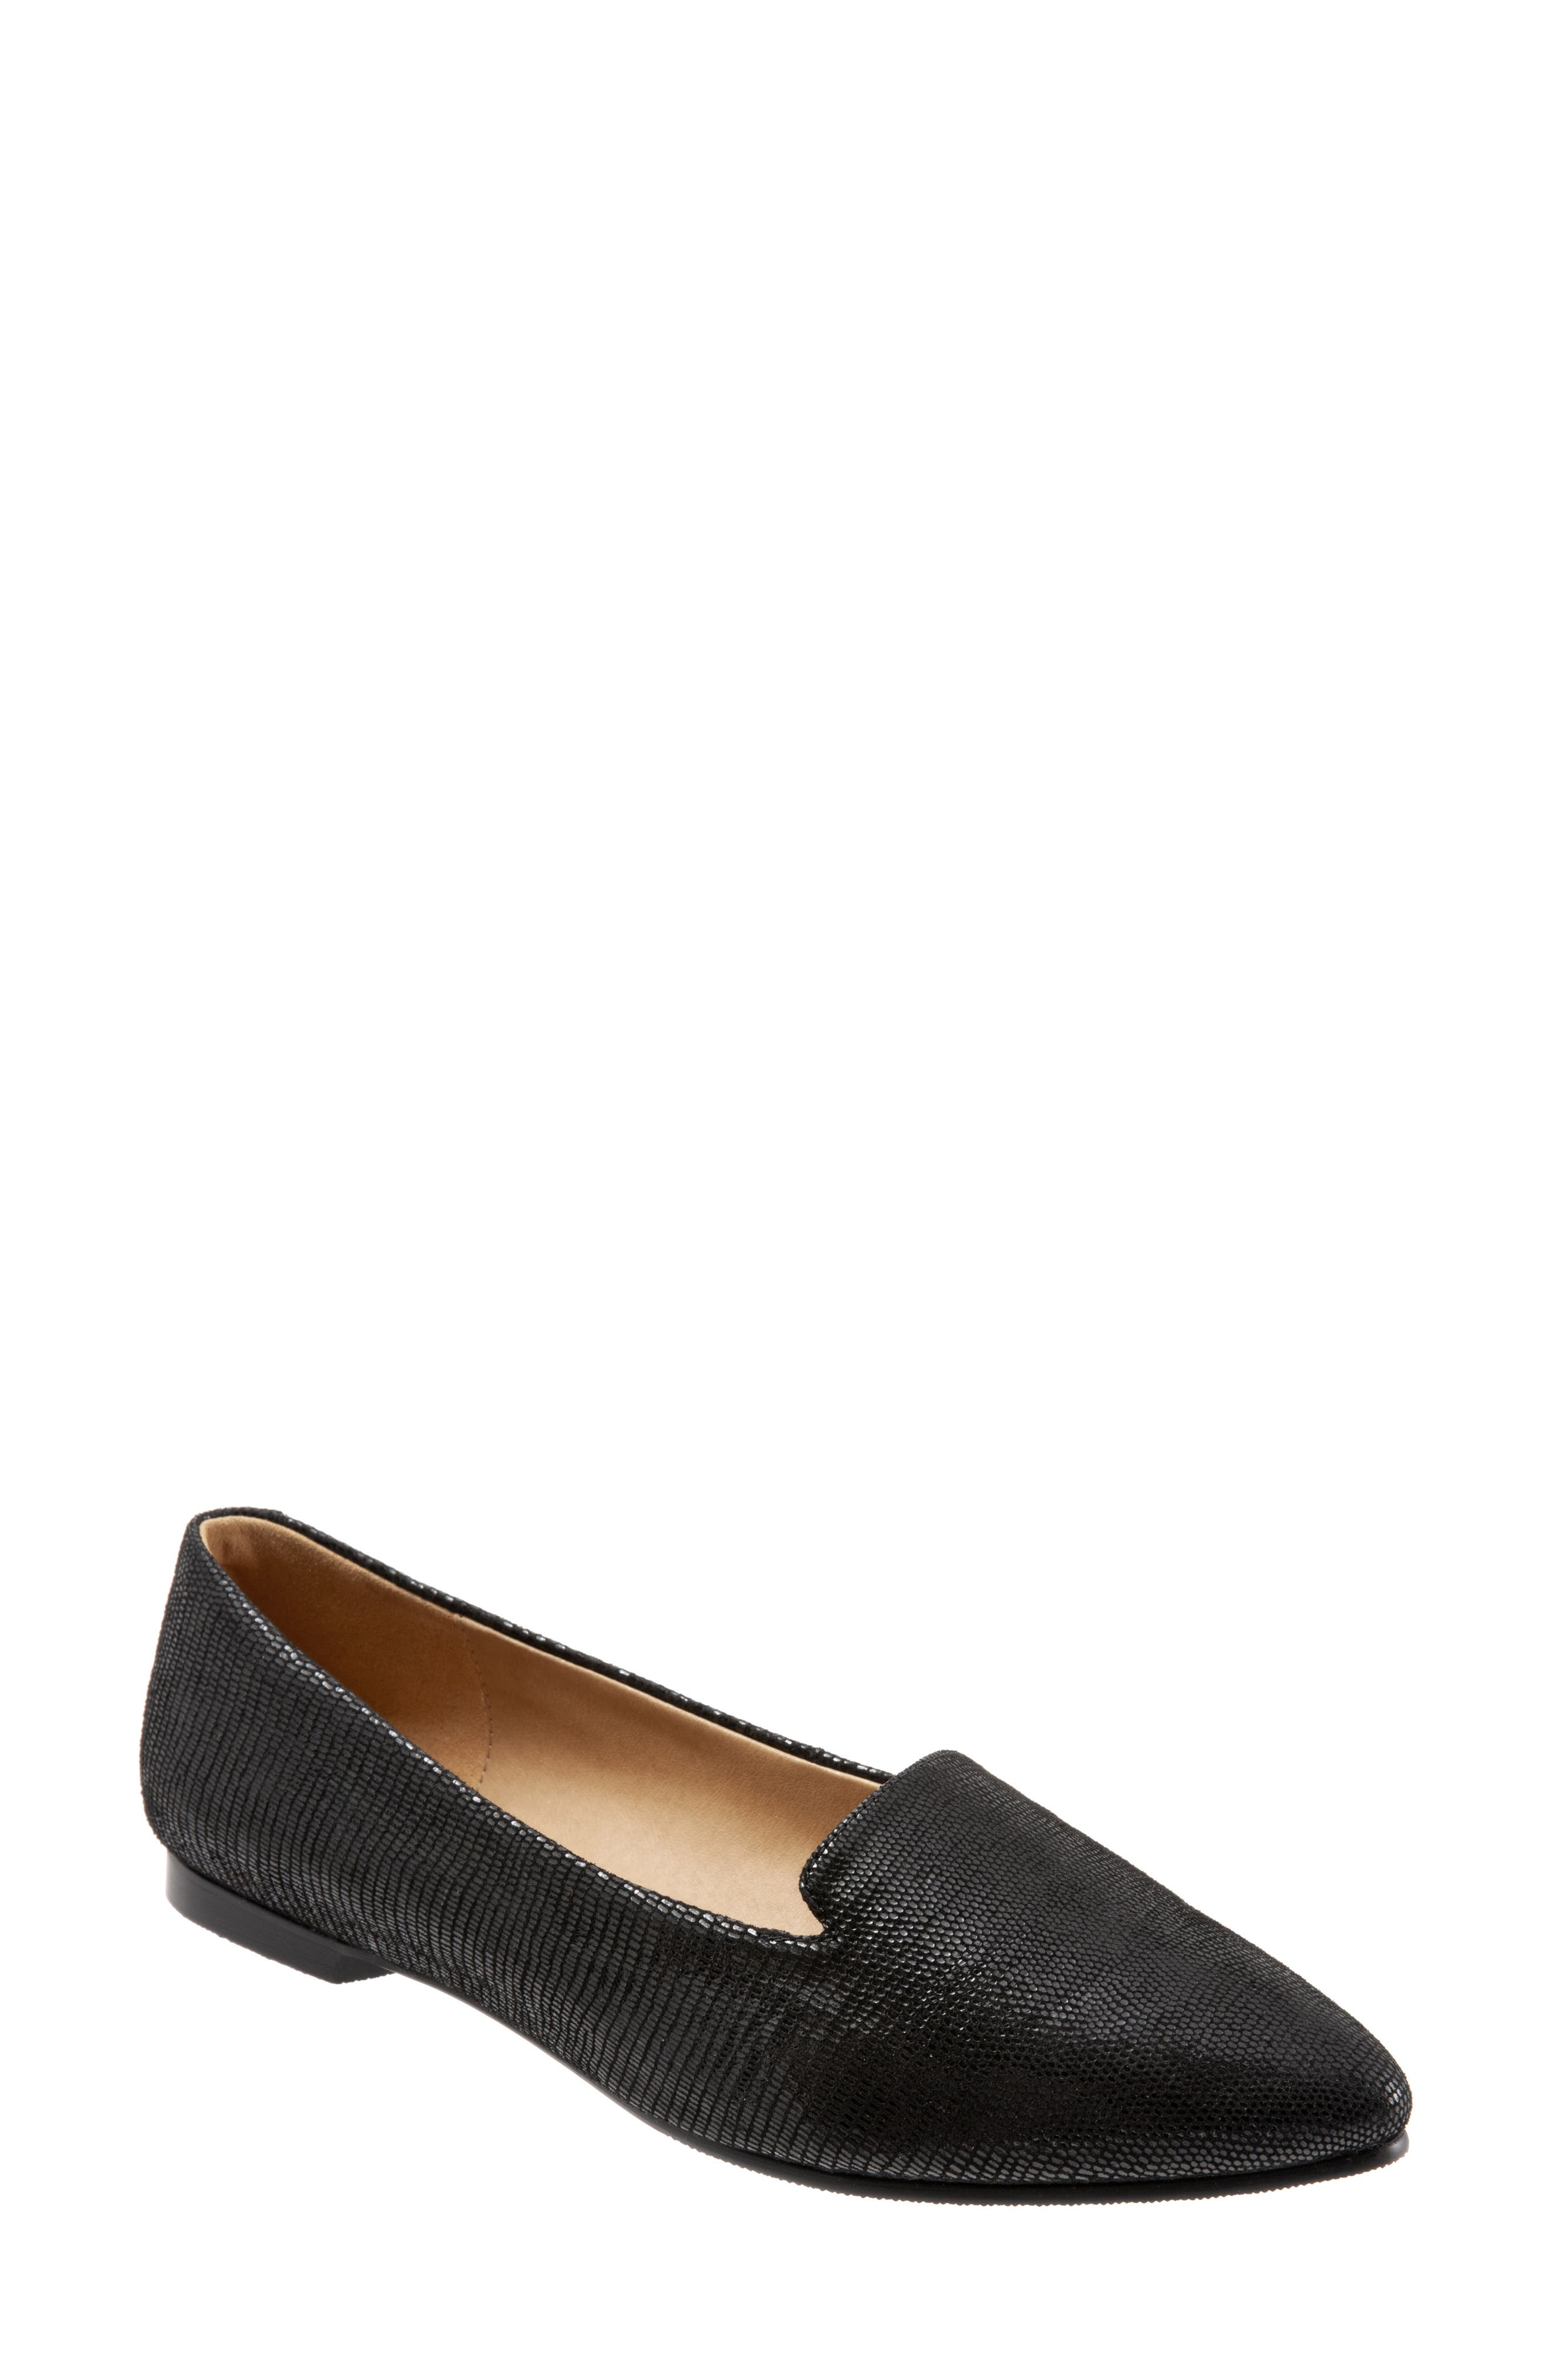 TROTTERS, Harlowe Pointy Toe Loafer, Main thumbnail 1, color, DARK BLACK LEATHER